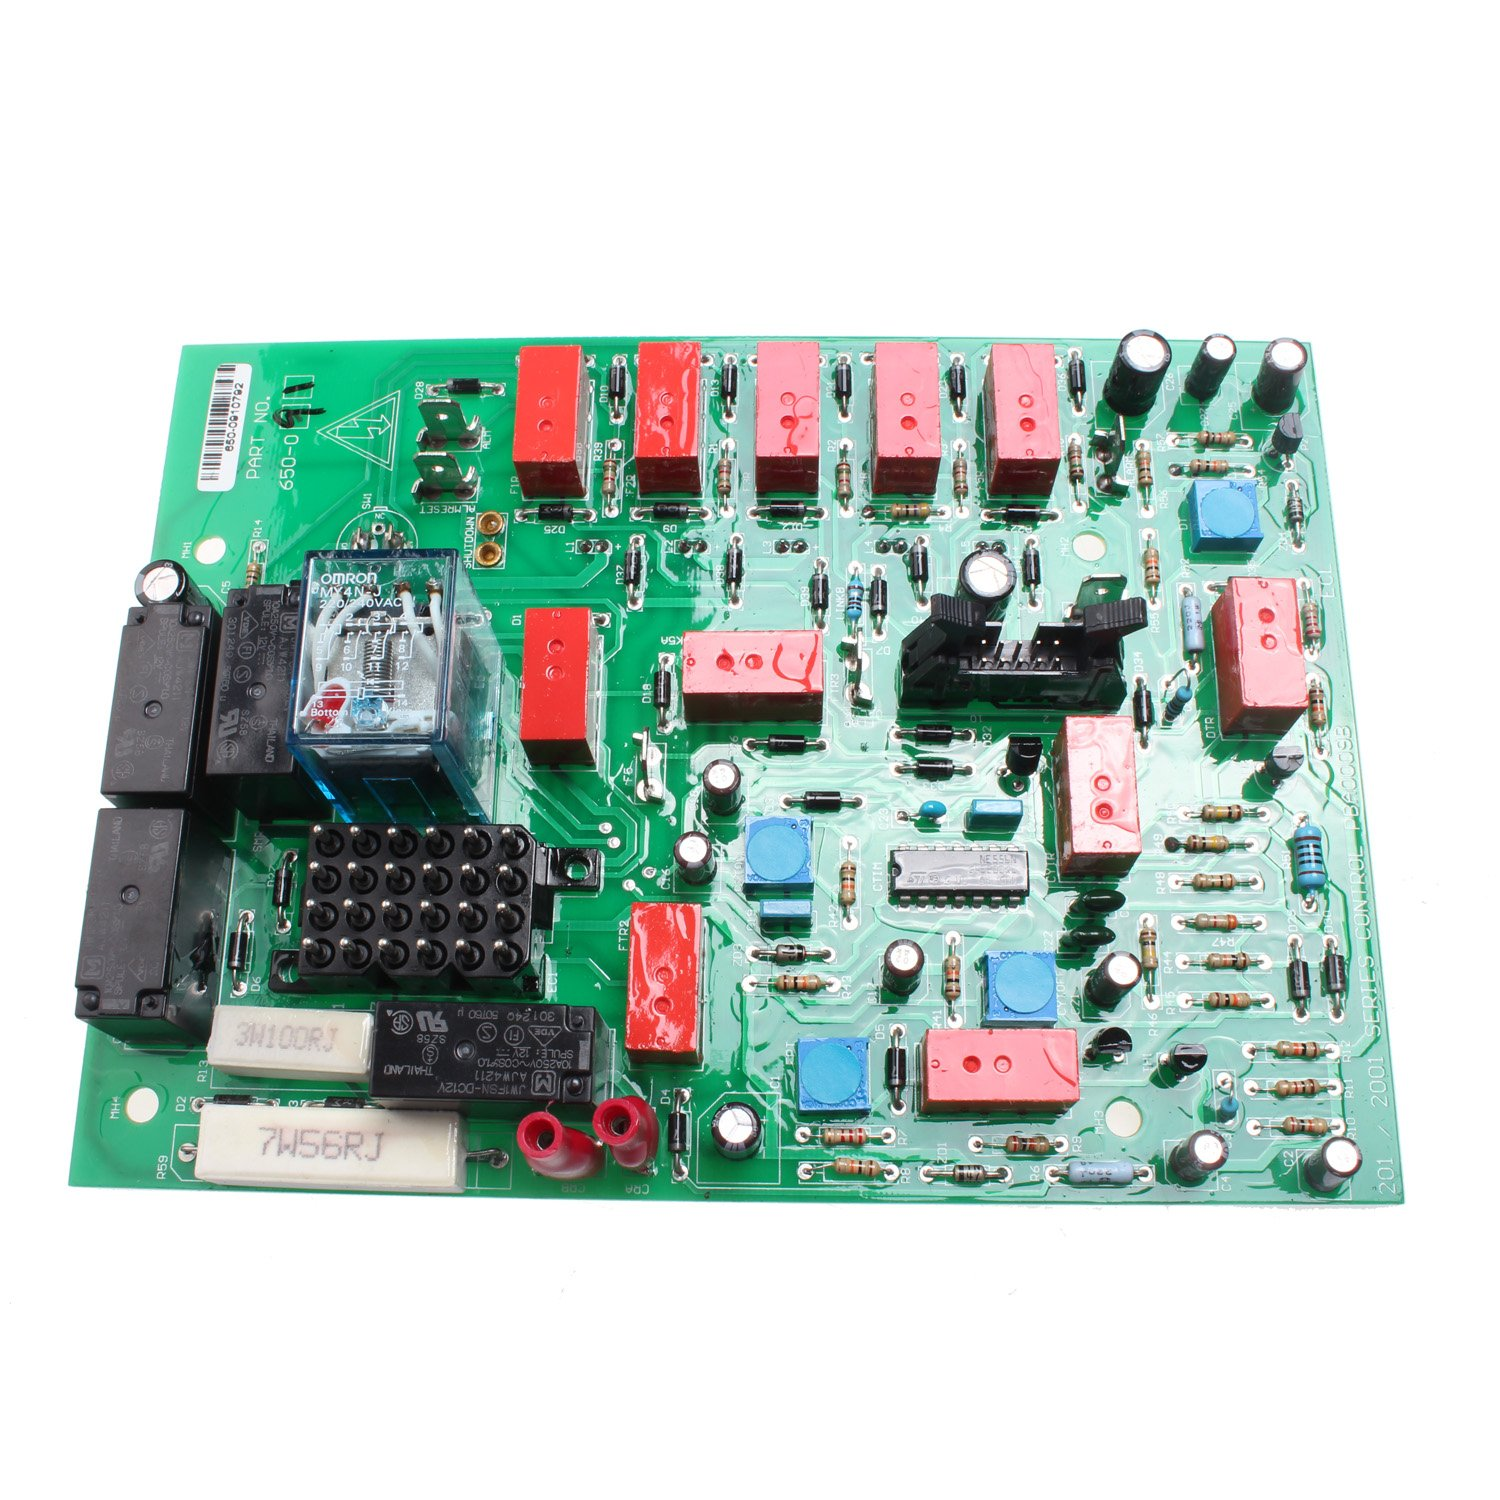 Mover Parts Printed Circuit Board for FG Vilson Parts PCB PCB650-091 by Mover Parts